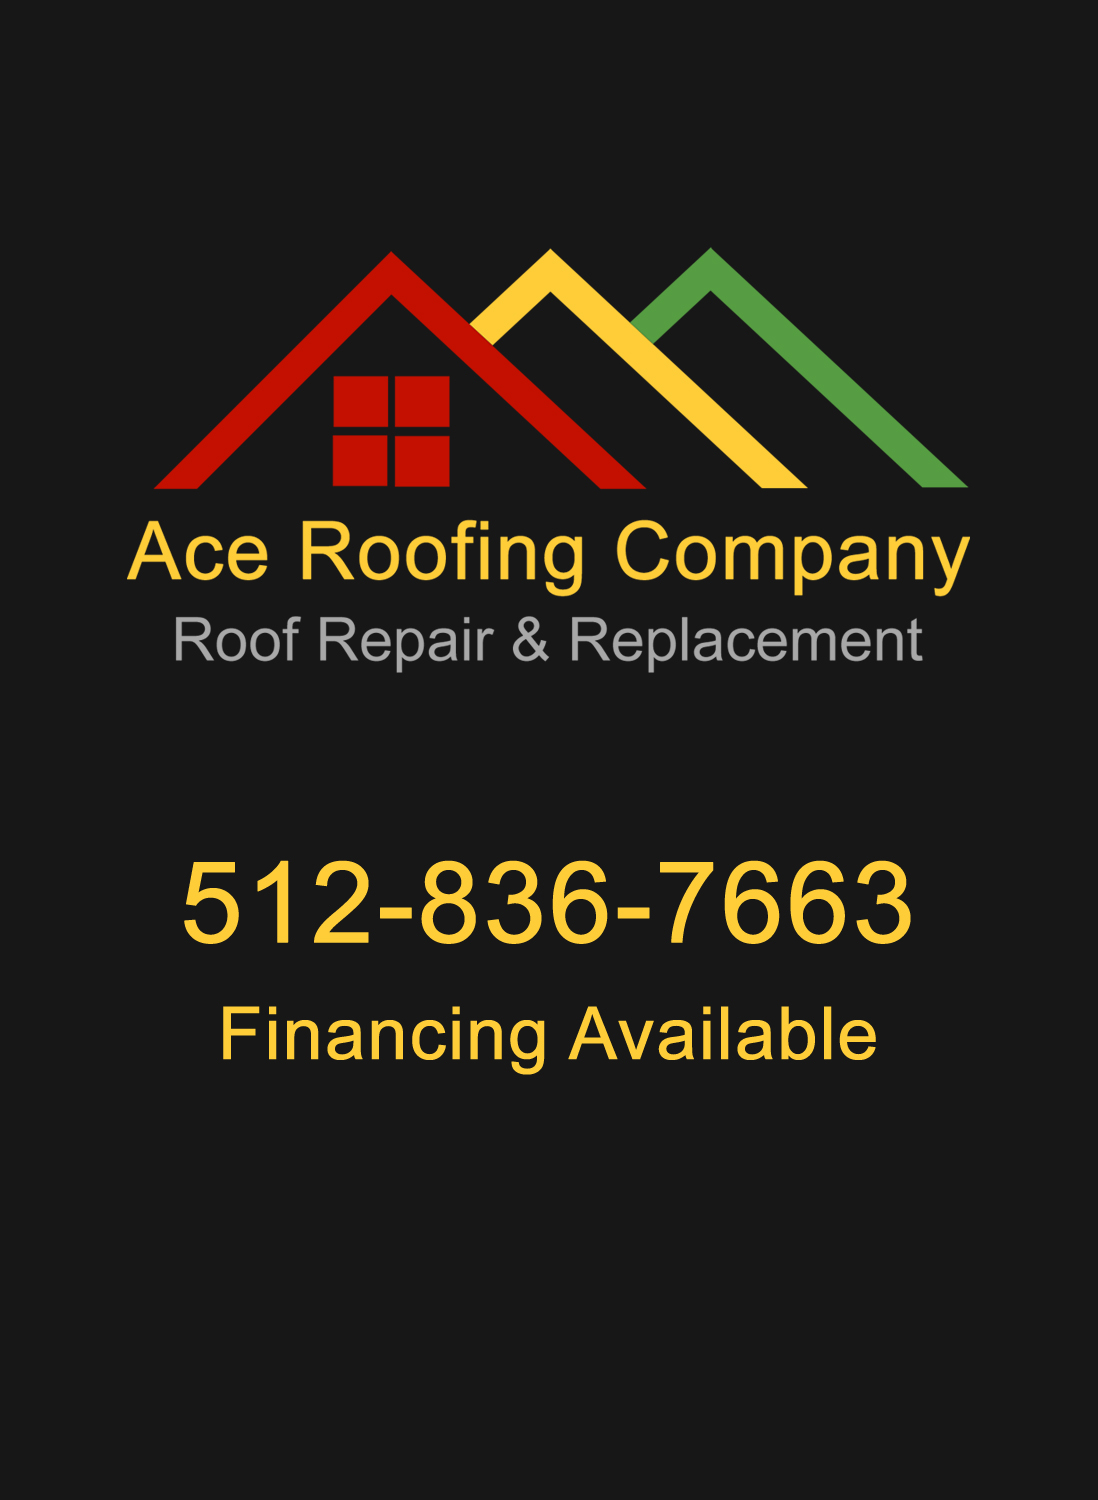 Ace Roofing Company Announces Its Expanded Residential Roofing Services